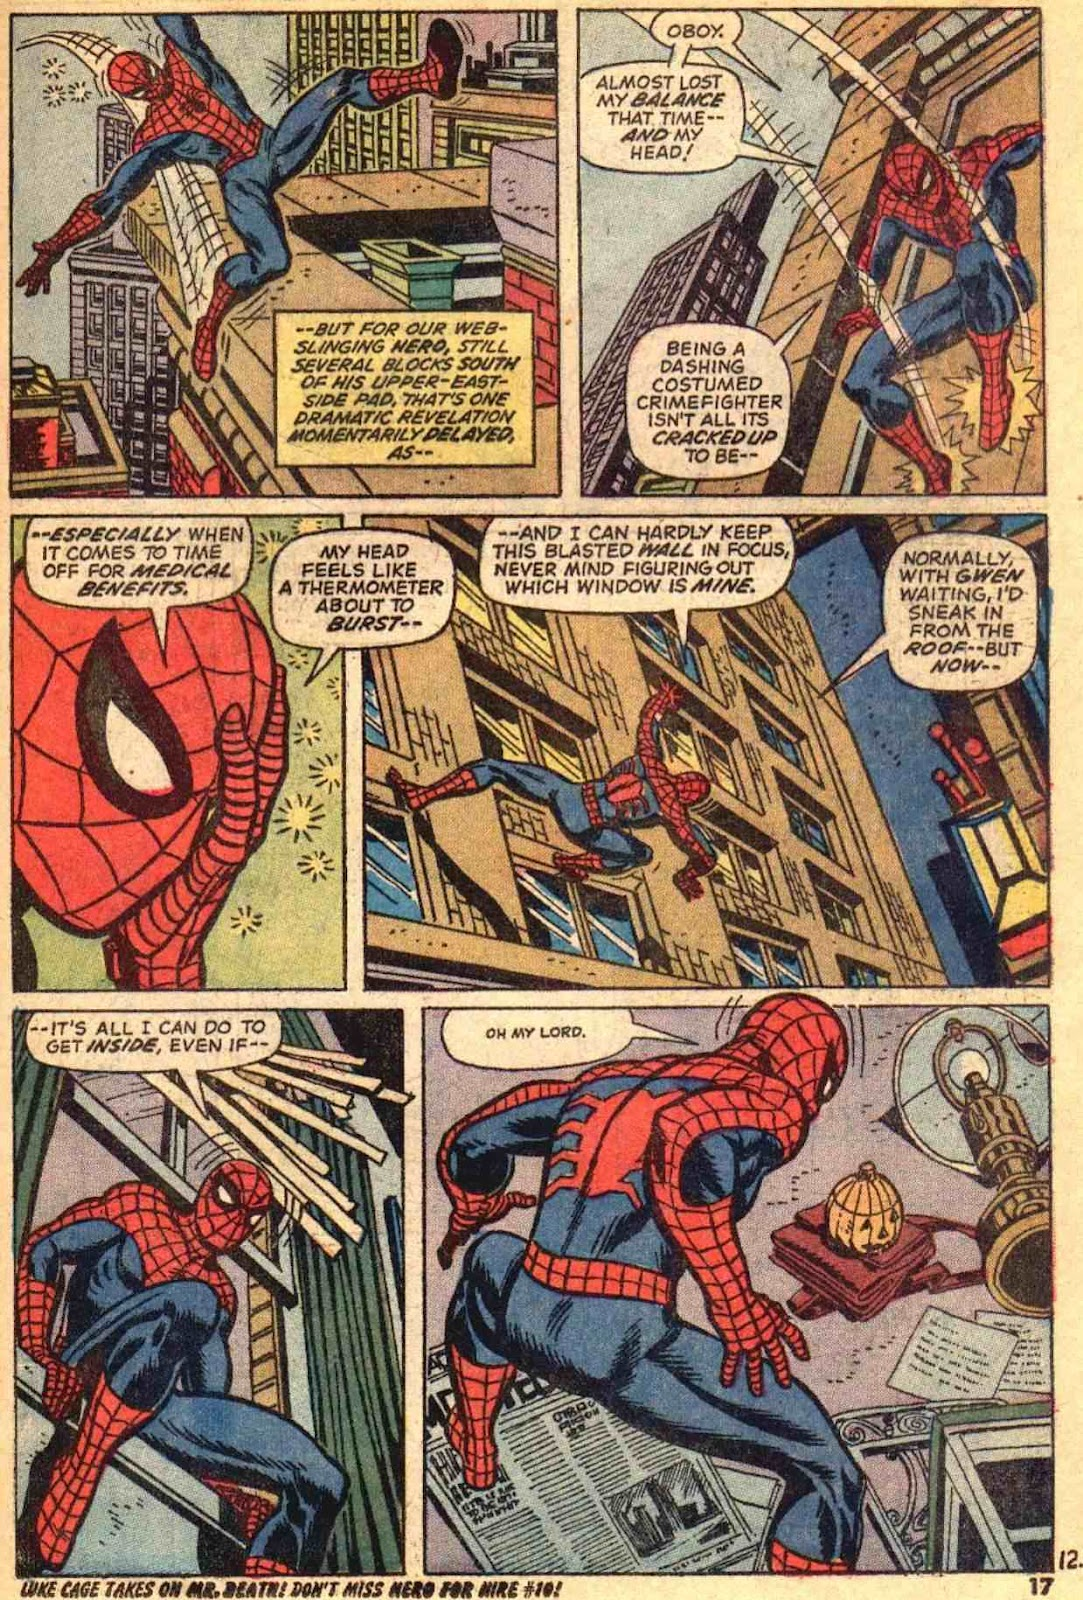 Best Spider-Man Story Ever: The Night Gwen Stacy Died